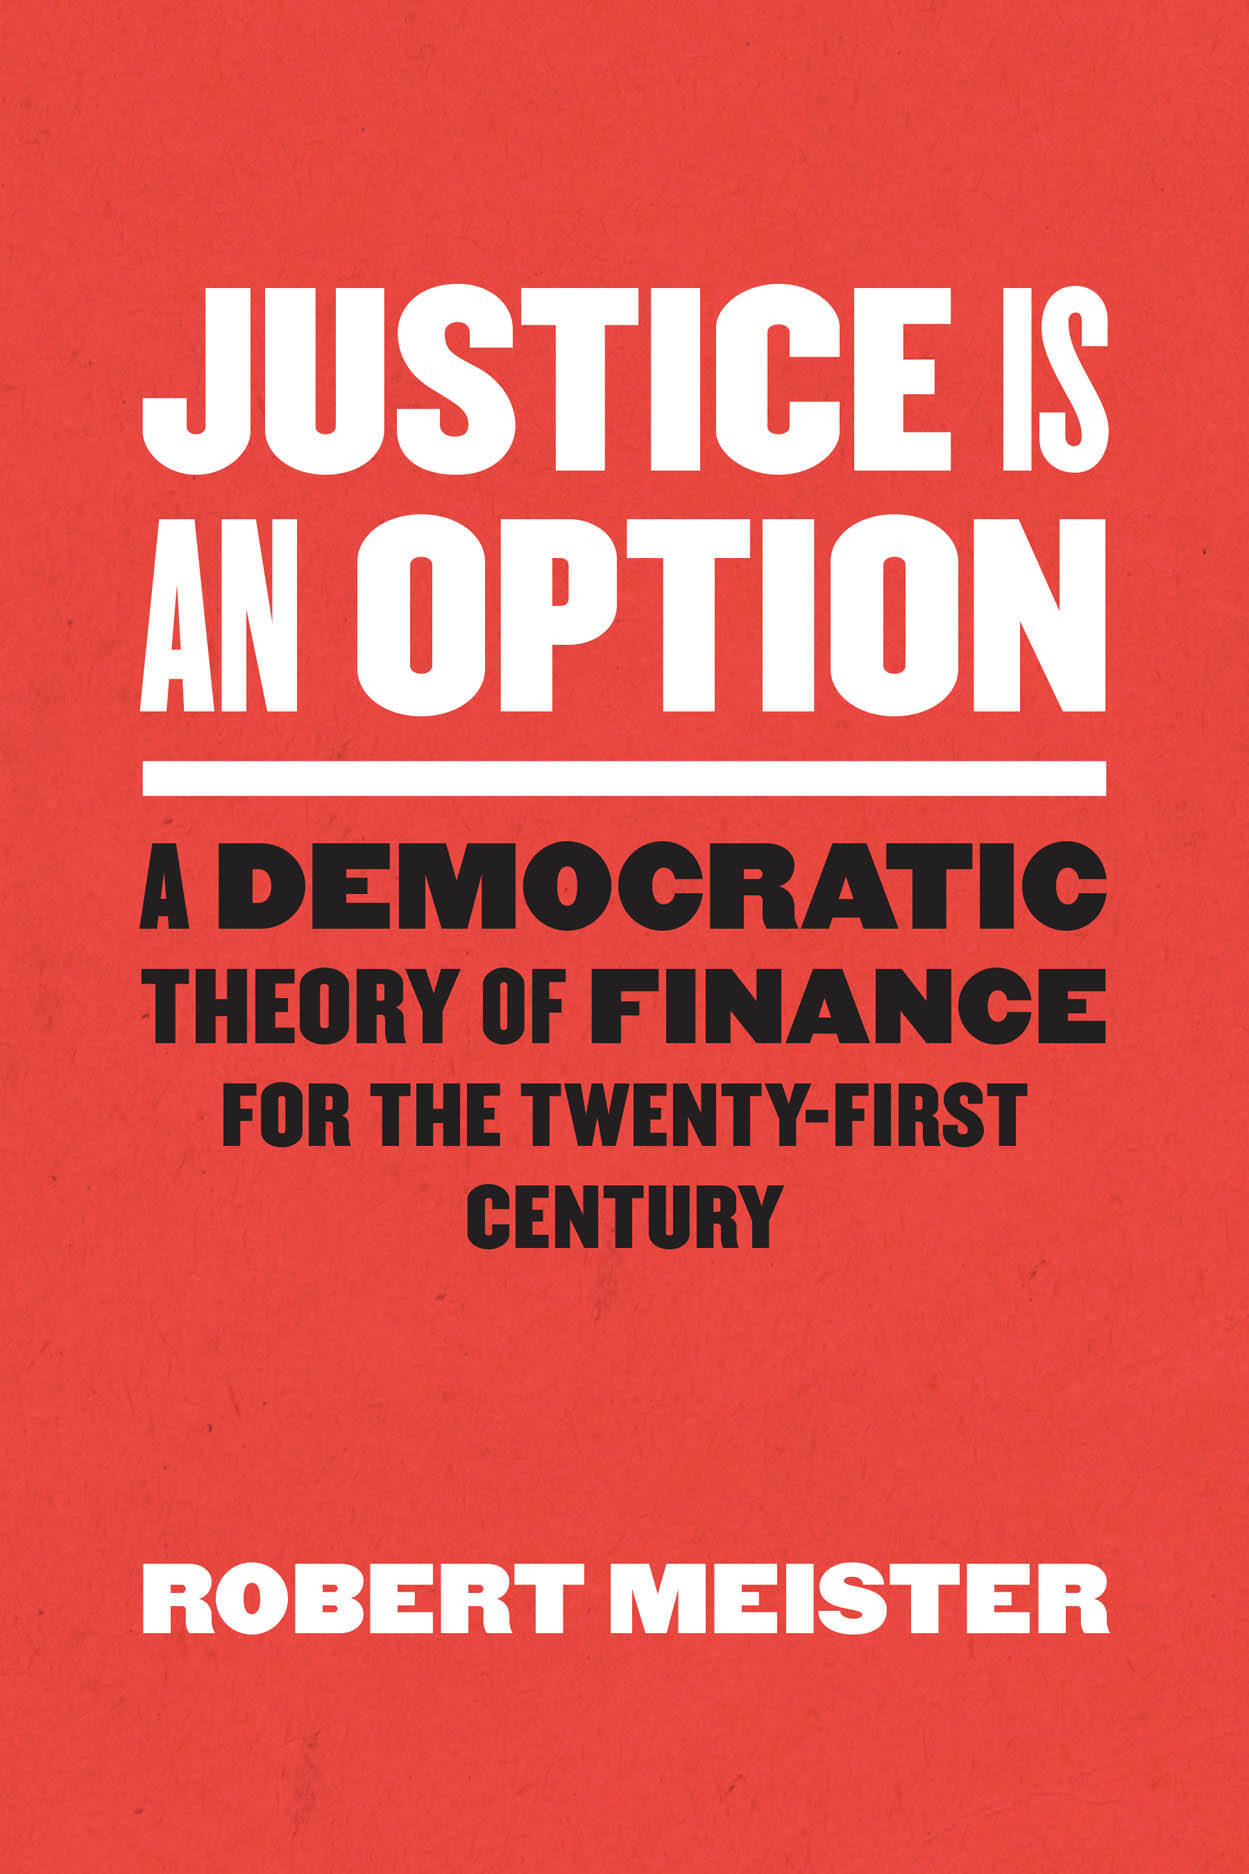 Justice Is an Option: A Democratic Theory of Finance for the Twenty-First Century